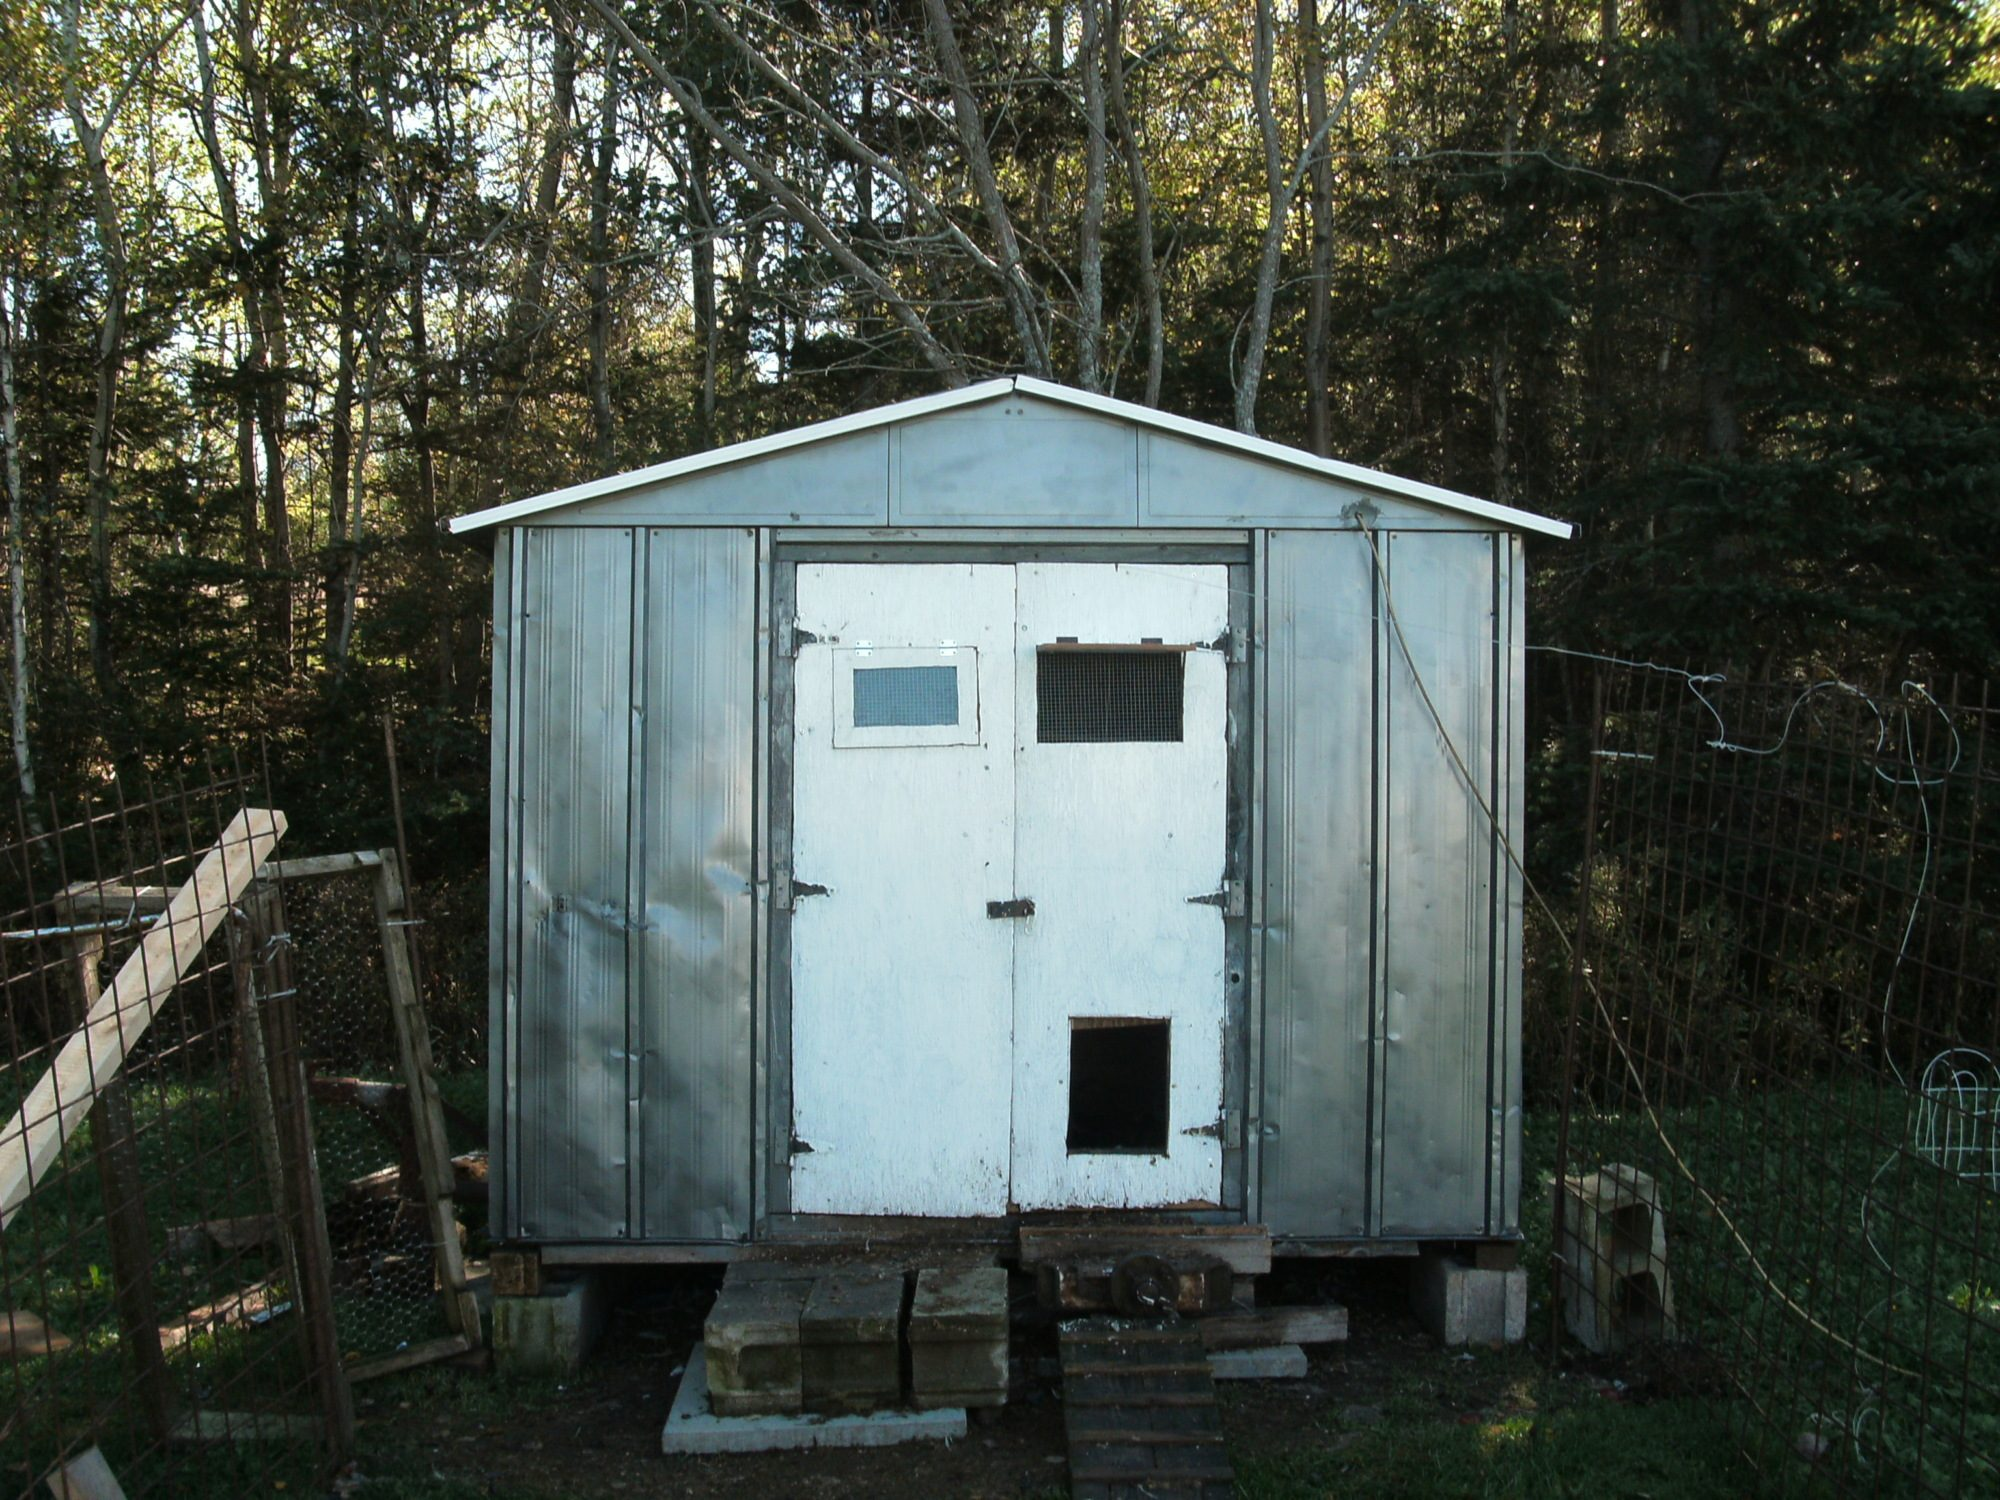 Old metal 4x8 shed I salvaged, painted, put wooden doors on, insulated and converted into chicken coop. Still a work in progress. It was basically a box kite when I drug it home.